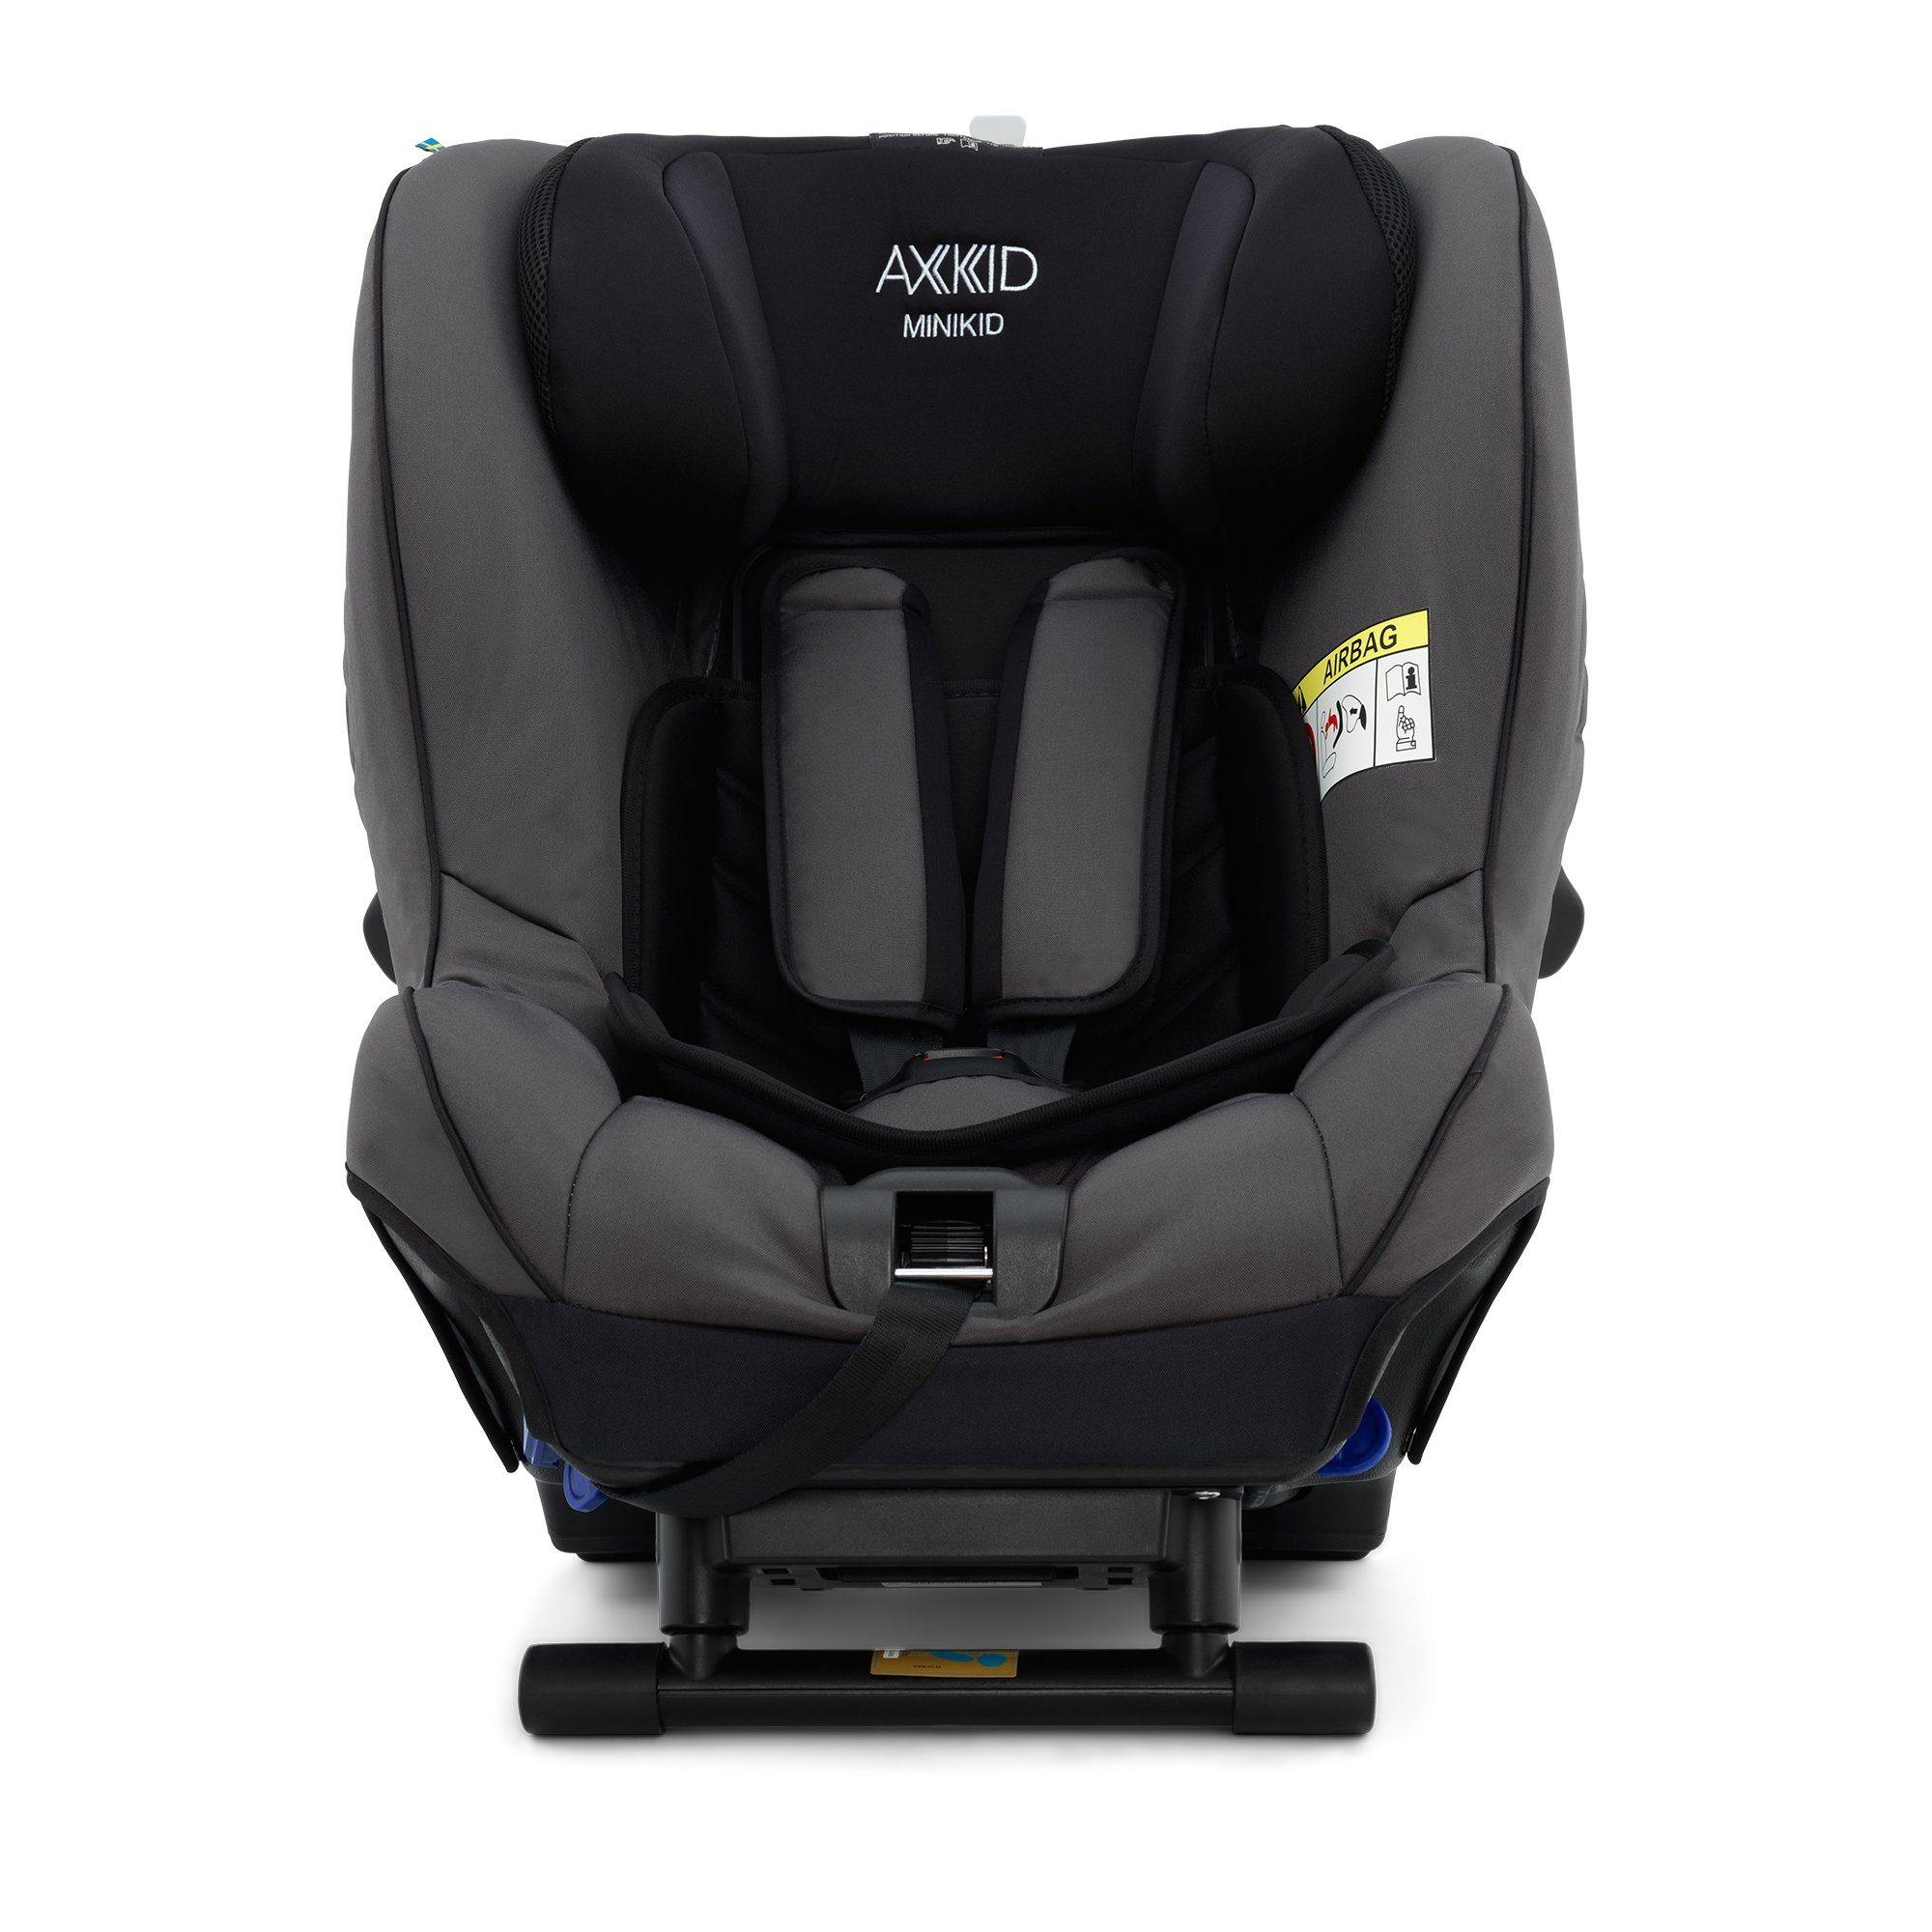 Axkid Minikid 2.0 Extended Rear-facing Car Seat - Granite - Pushchair Expert